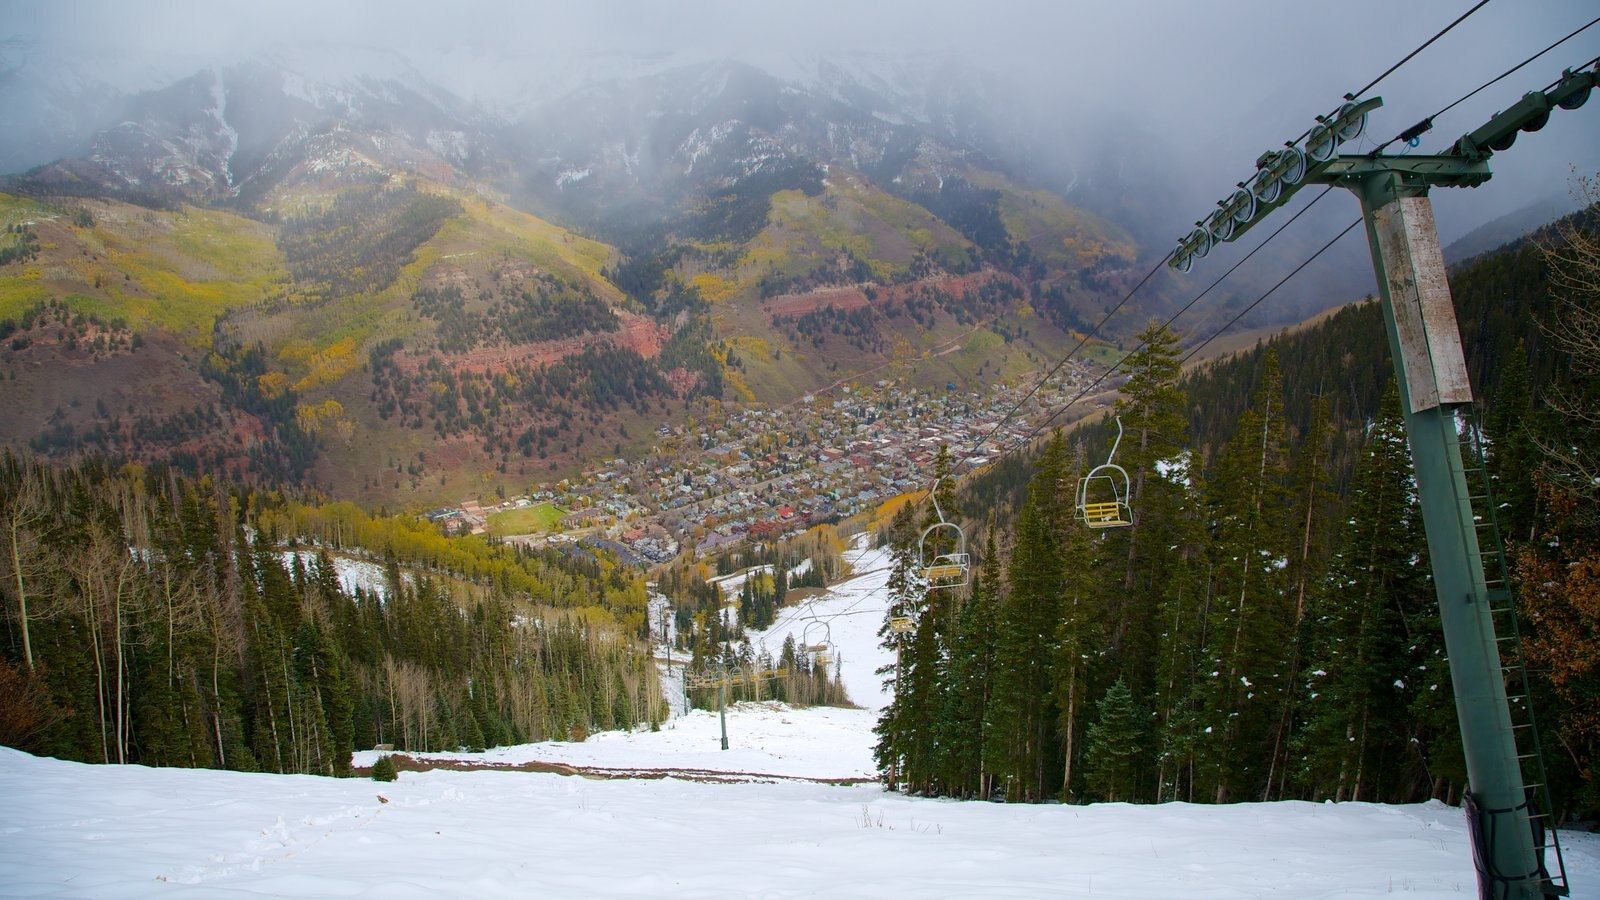 Telluride Ski Resort Which Includes Snow A Small Town Or Village And Forests